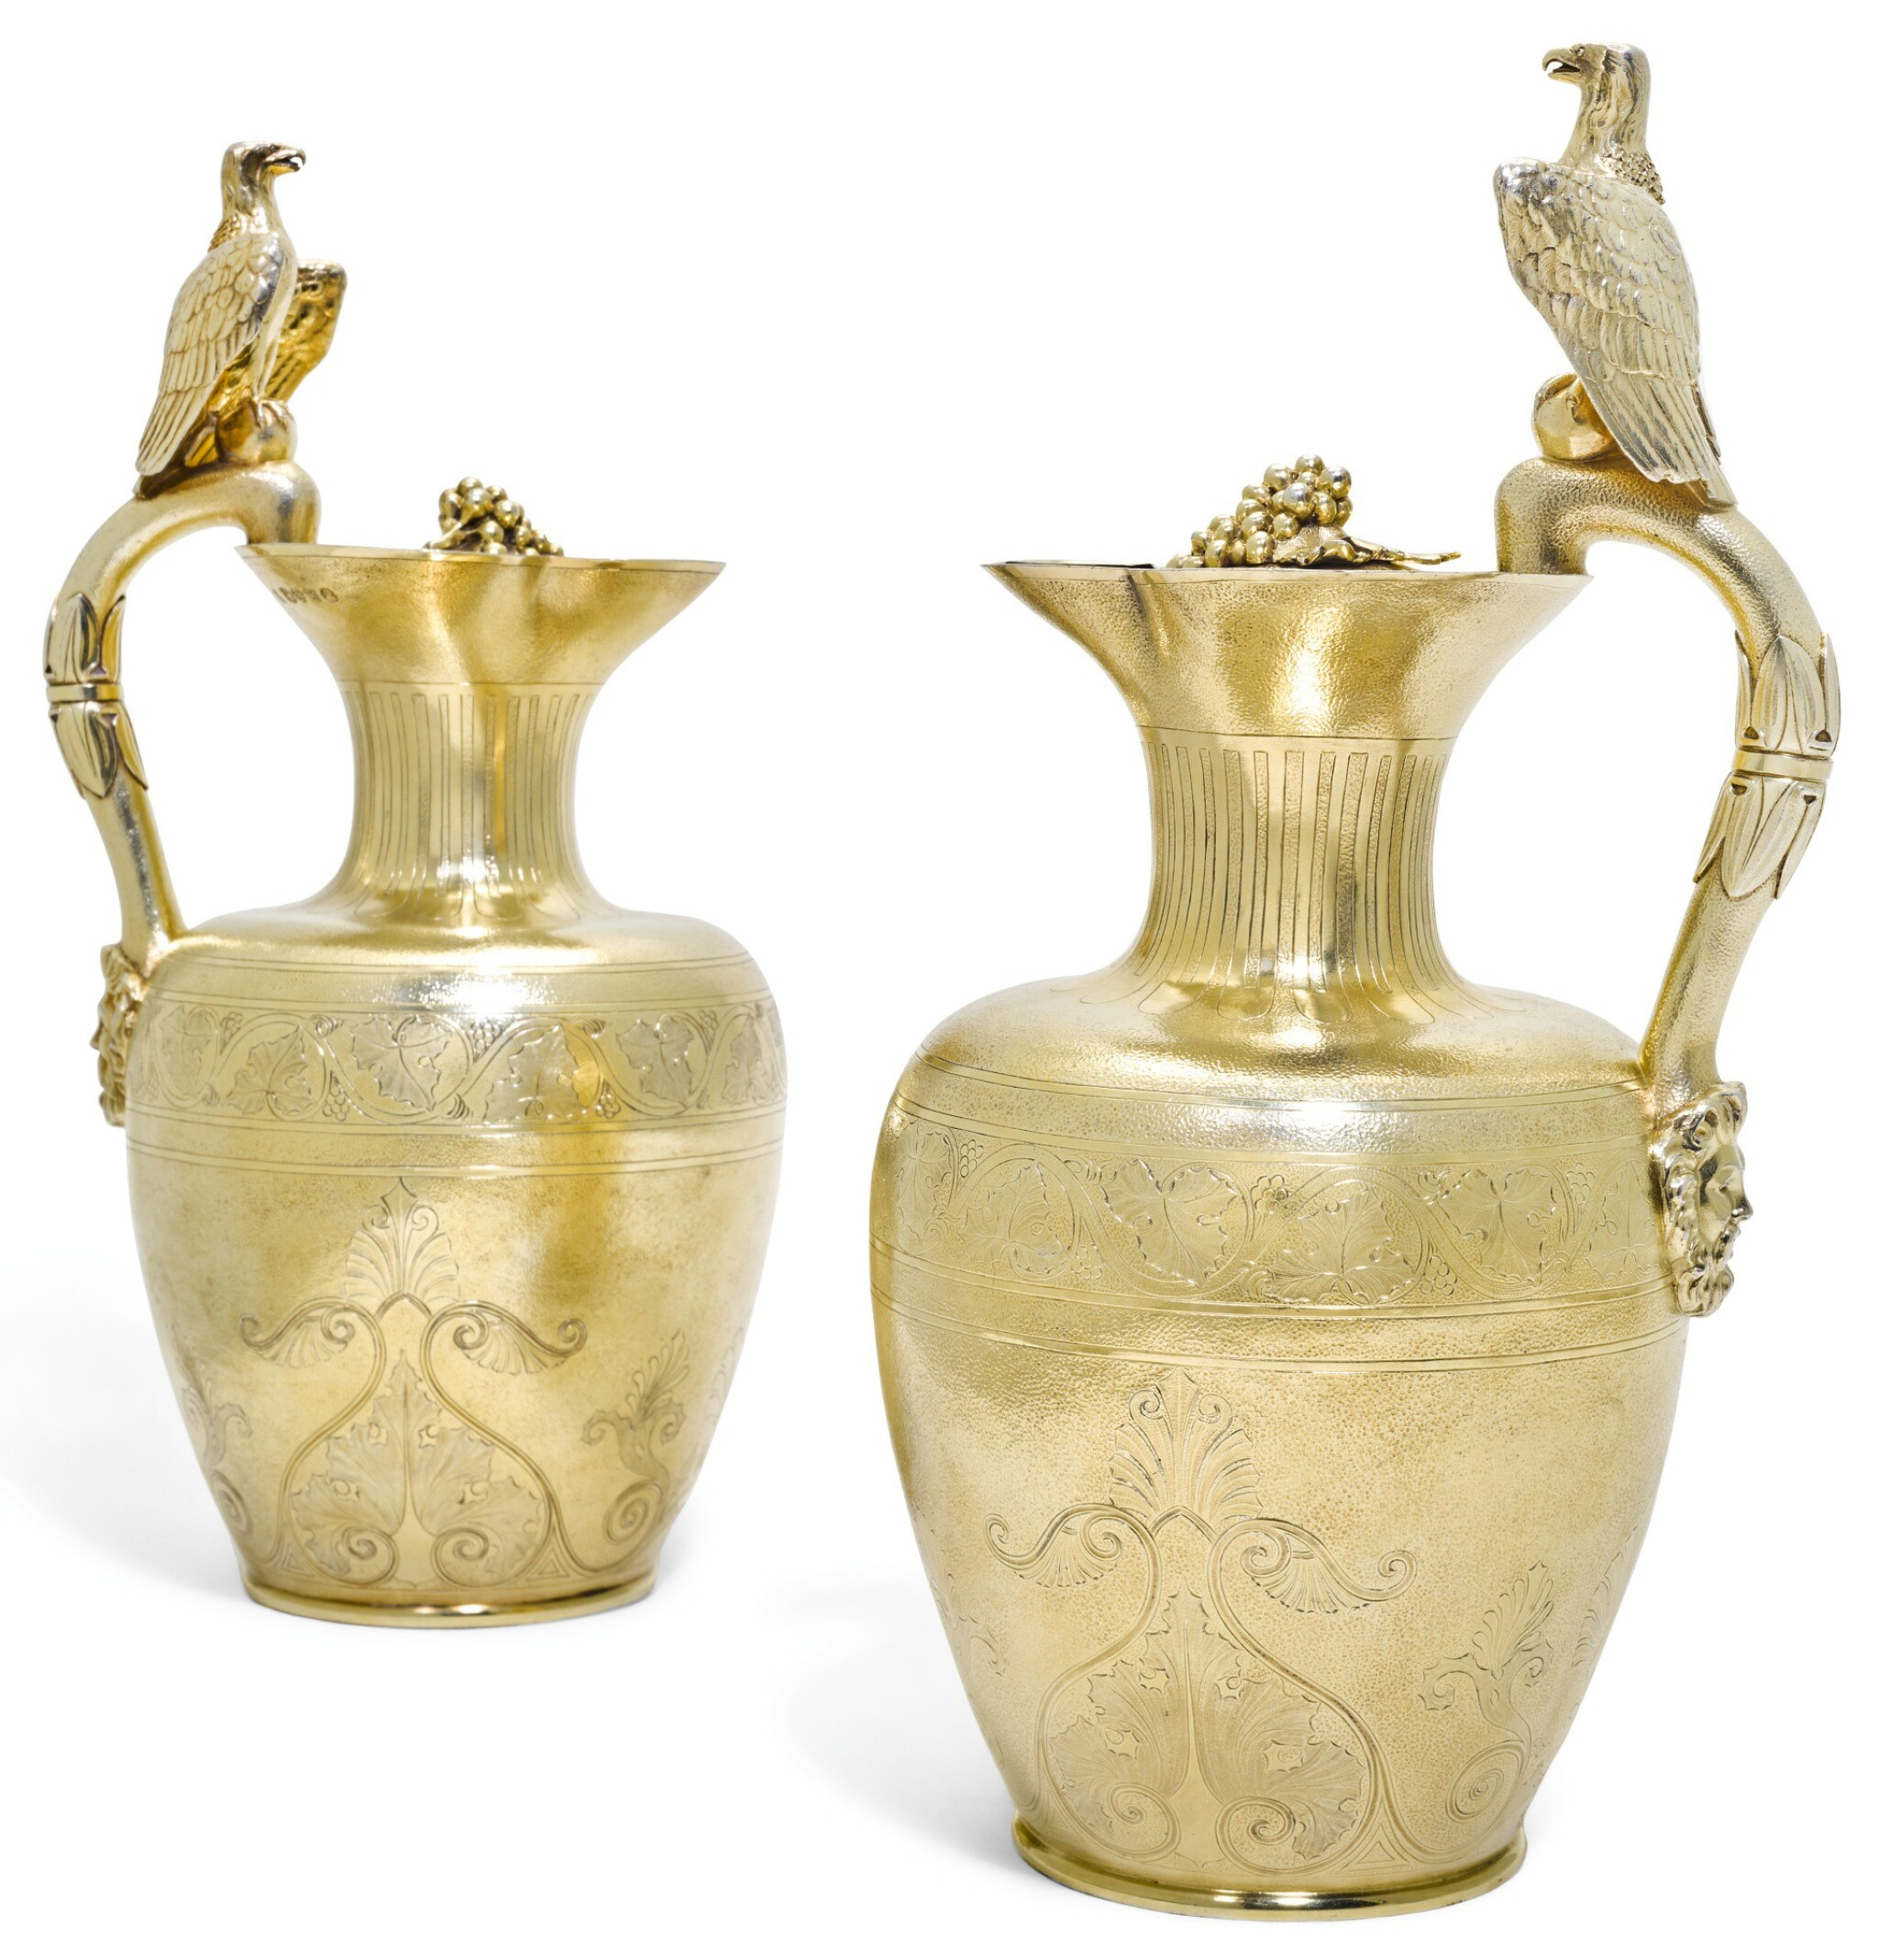 View full screen - View 1 of Lot 139. ROYAL. A PAIR OF WILLIAM IV SILVER-GILT CLARET JUGS, ONE JOHN BRIDGE FOR RUNDELL, BRIDGE & RUNDELL, 1833, THE OTHER JOHN SPARKES TAPLEY FOR JOHN TAPLEY & CO., 1835, BOTH LONDON, RETAILED BY RUNDELL, BRIDGE & CO..